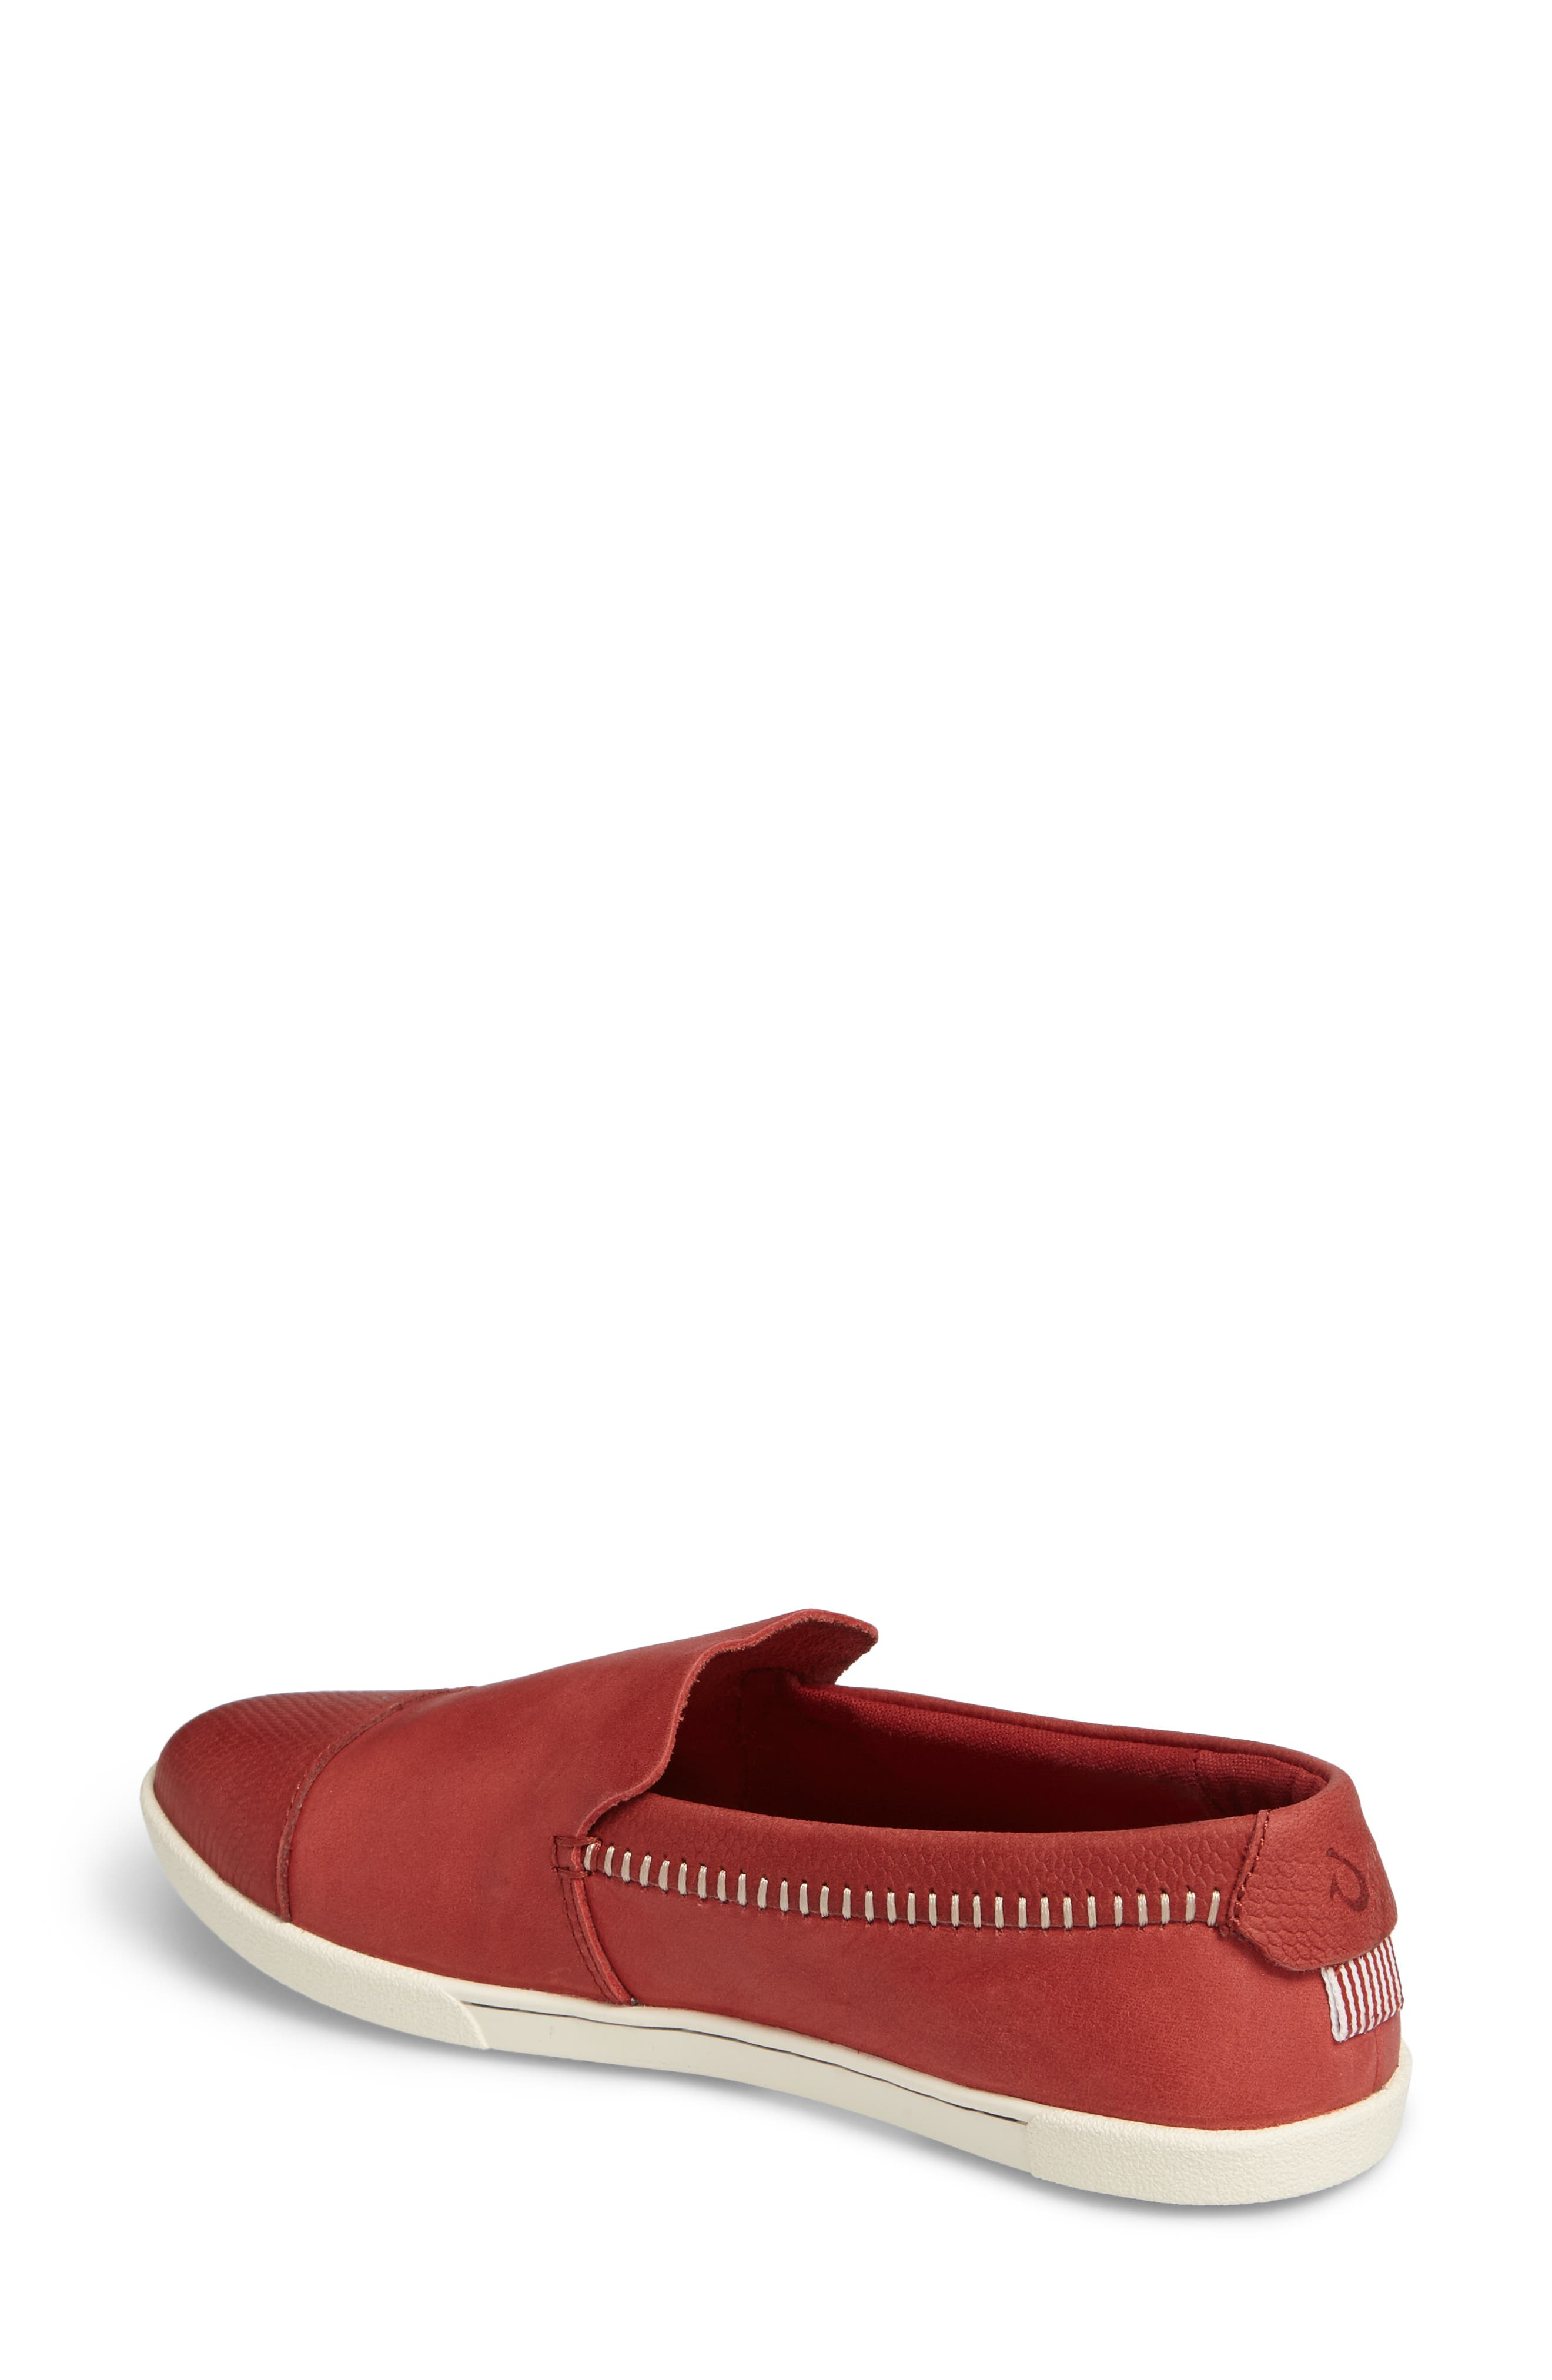 Alohi Embossed Cap Toe Slip-On,                             Alternate thumbnail 2, color,                             Red Mud/ Red Mud Leather